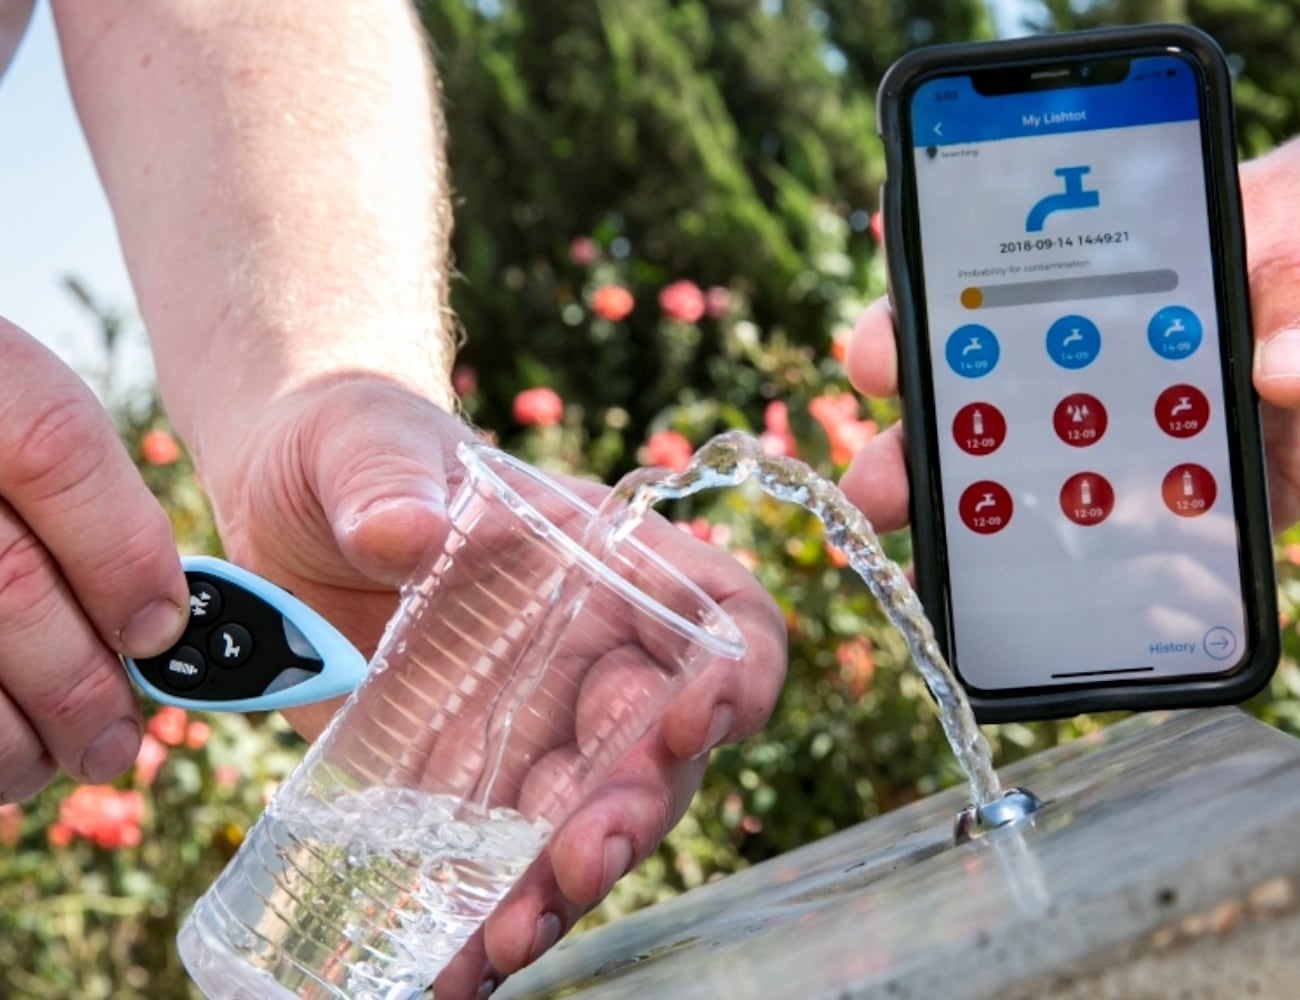 Lishtot TestDrop Pro Instant Water Quality Tester ensures you're drinking safe water